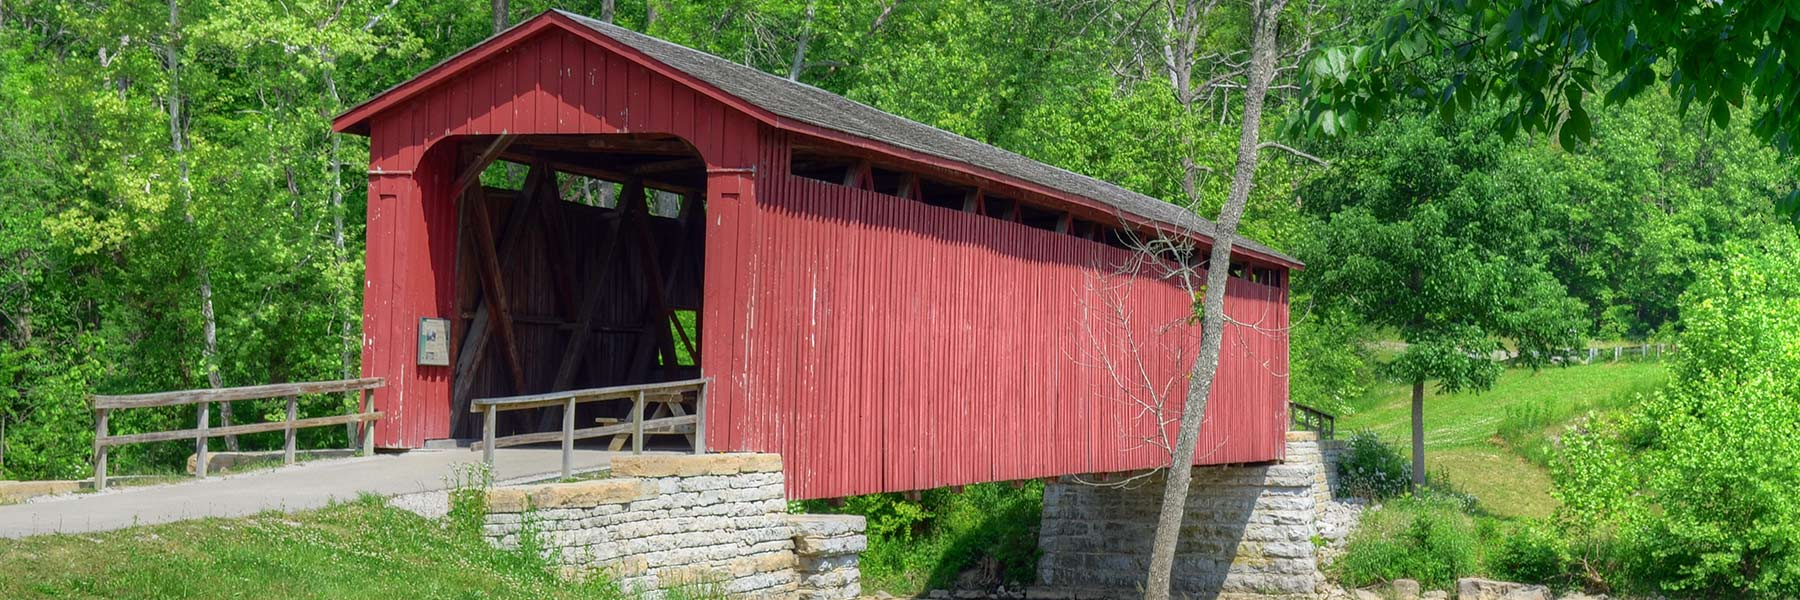 Covered bridge over Cataract Falls, a waterfall located in northern Owen County.